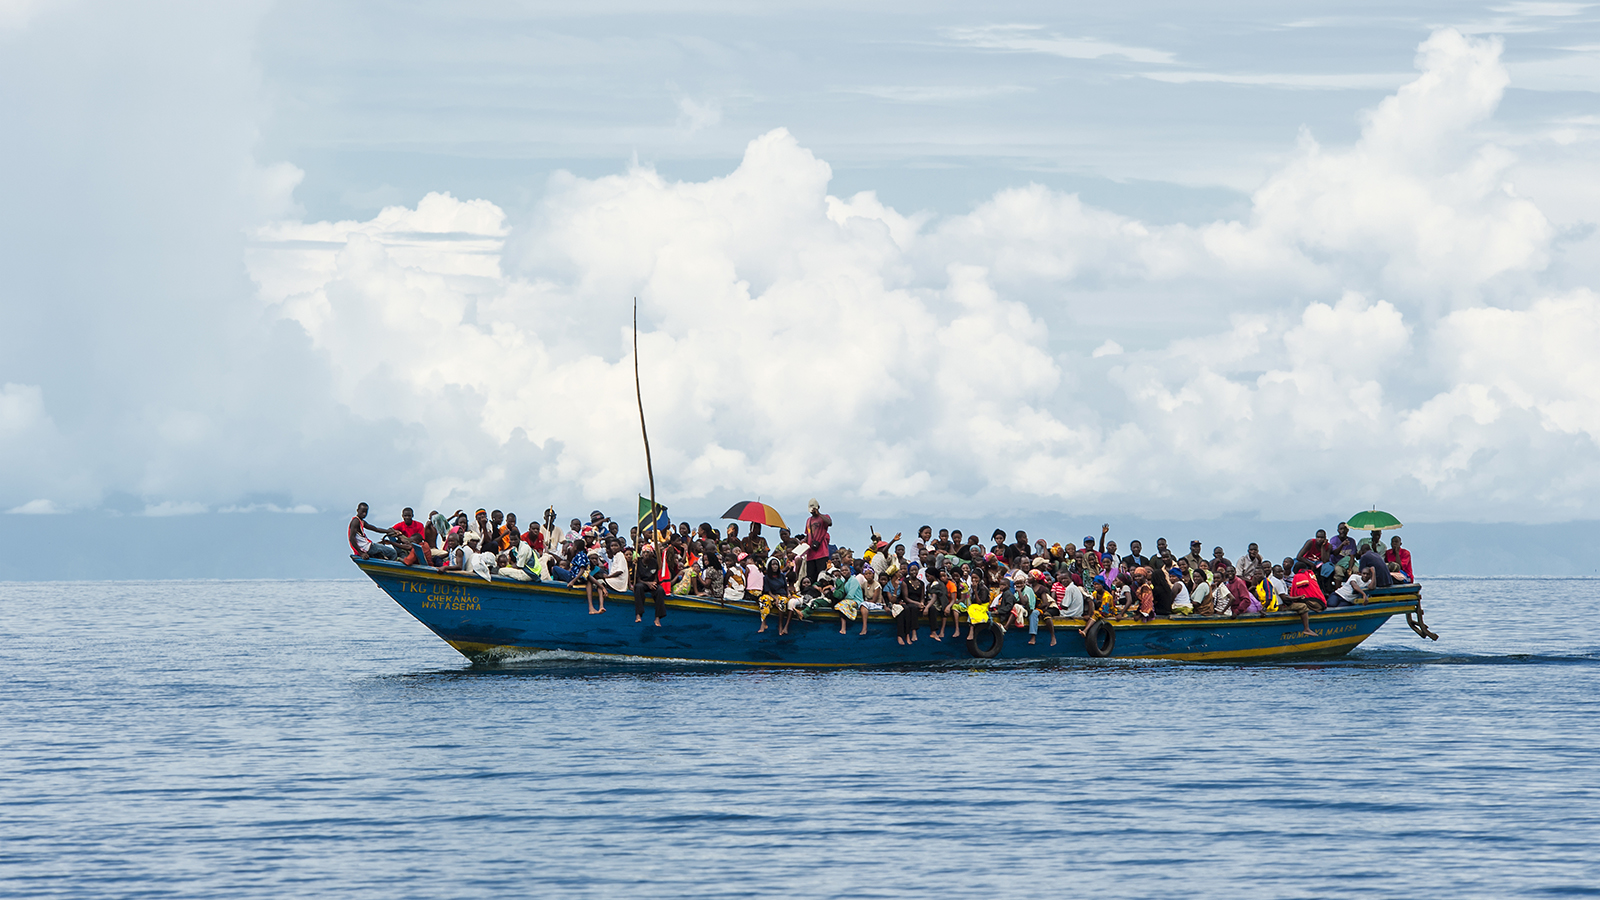 Wooden boat packed with refugees on the water